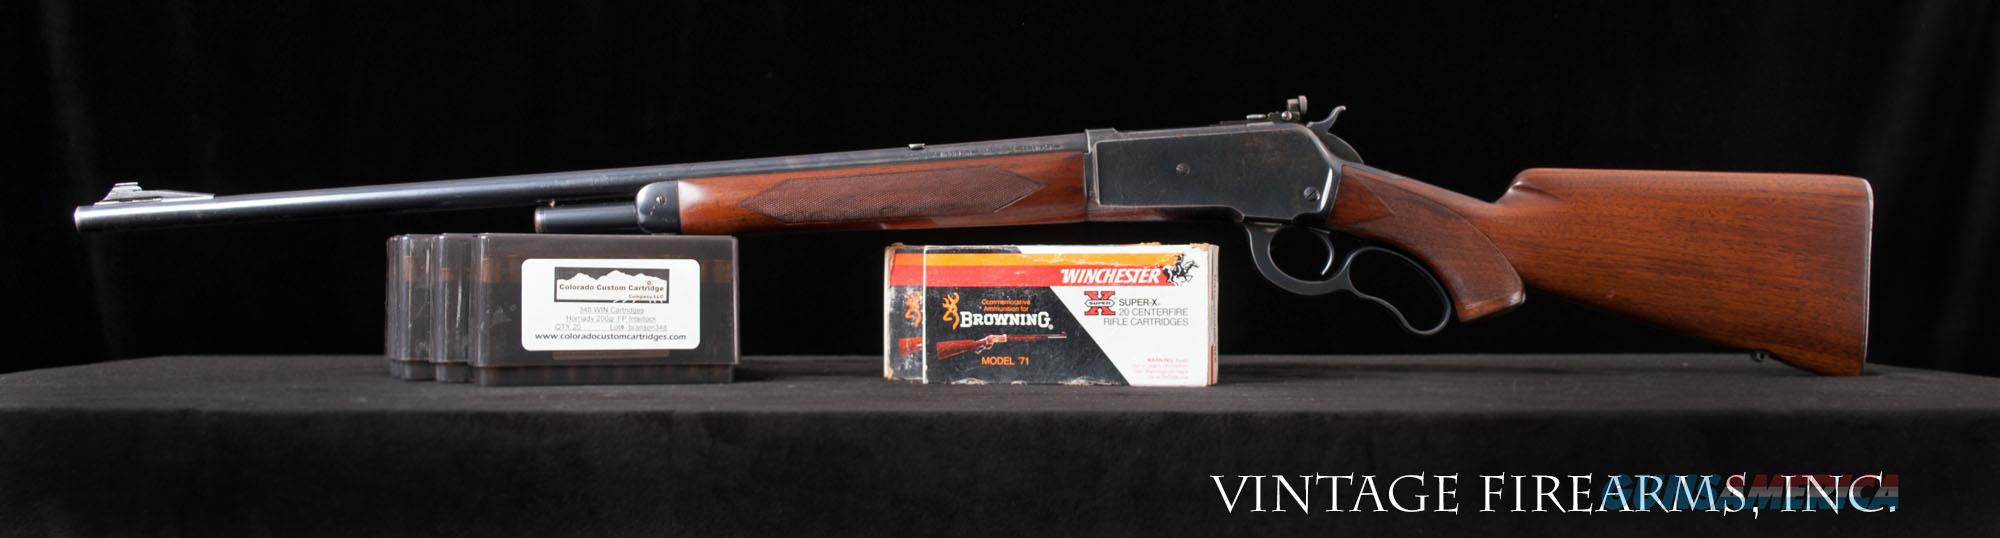 Winchester Model 71, .348 WINCHESTER DELUXE RIFLE 97% FACTORY FINISHES, AMMO, PEEP!   Guns > Rifles > Winchester Rifles - Modern Lever > Other Lever > Pre-64